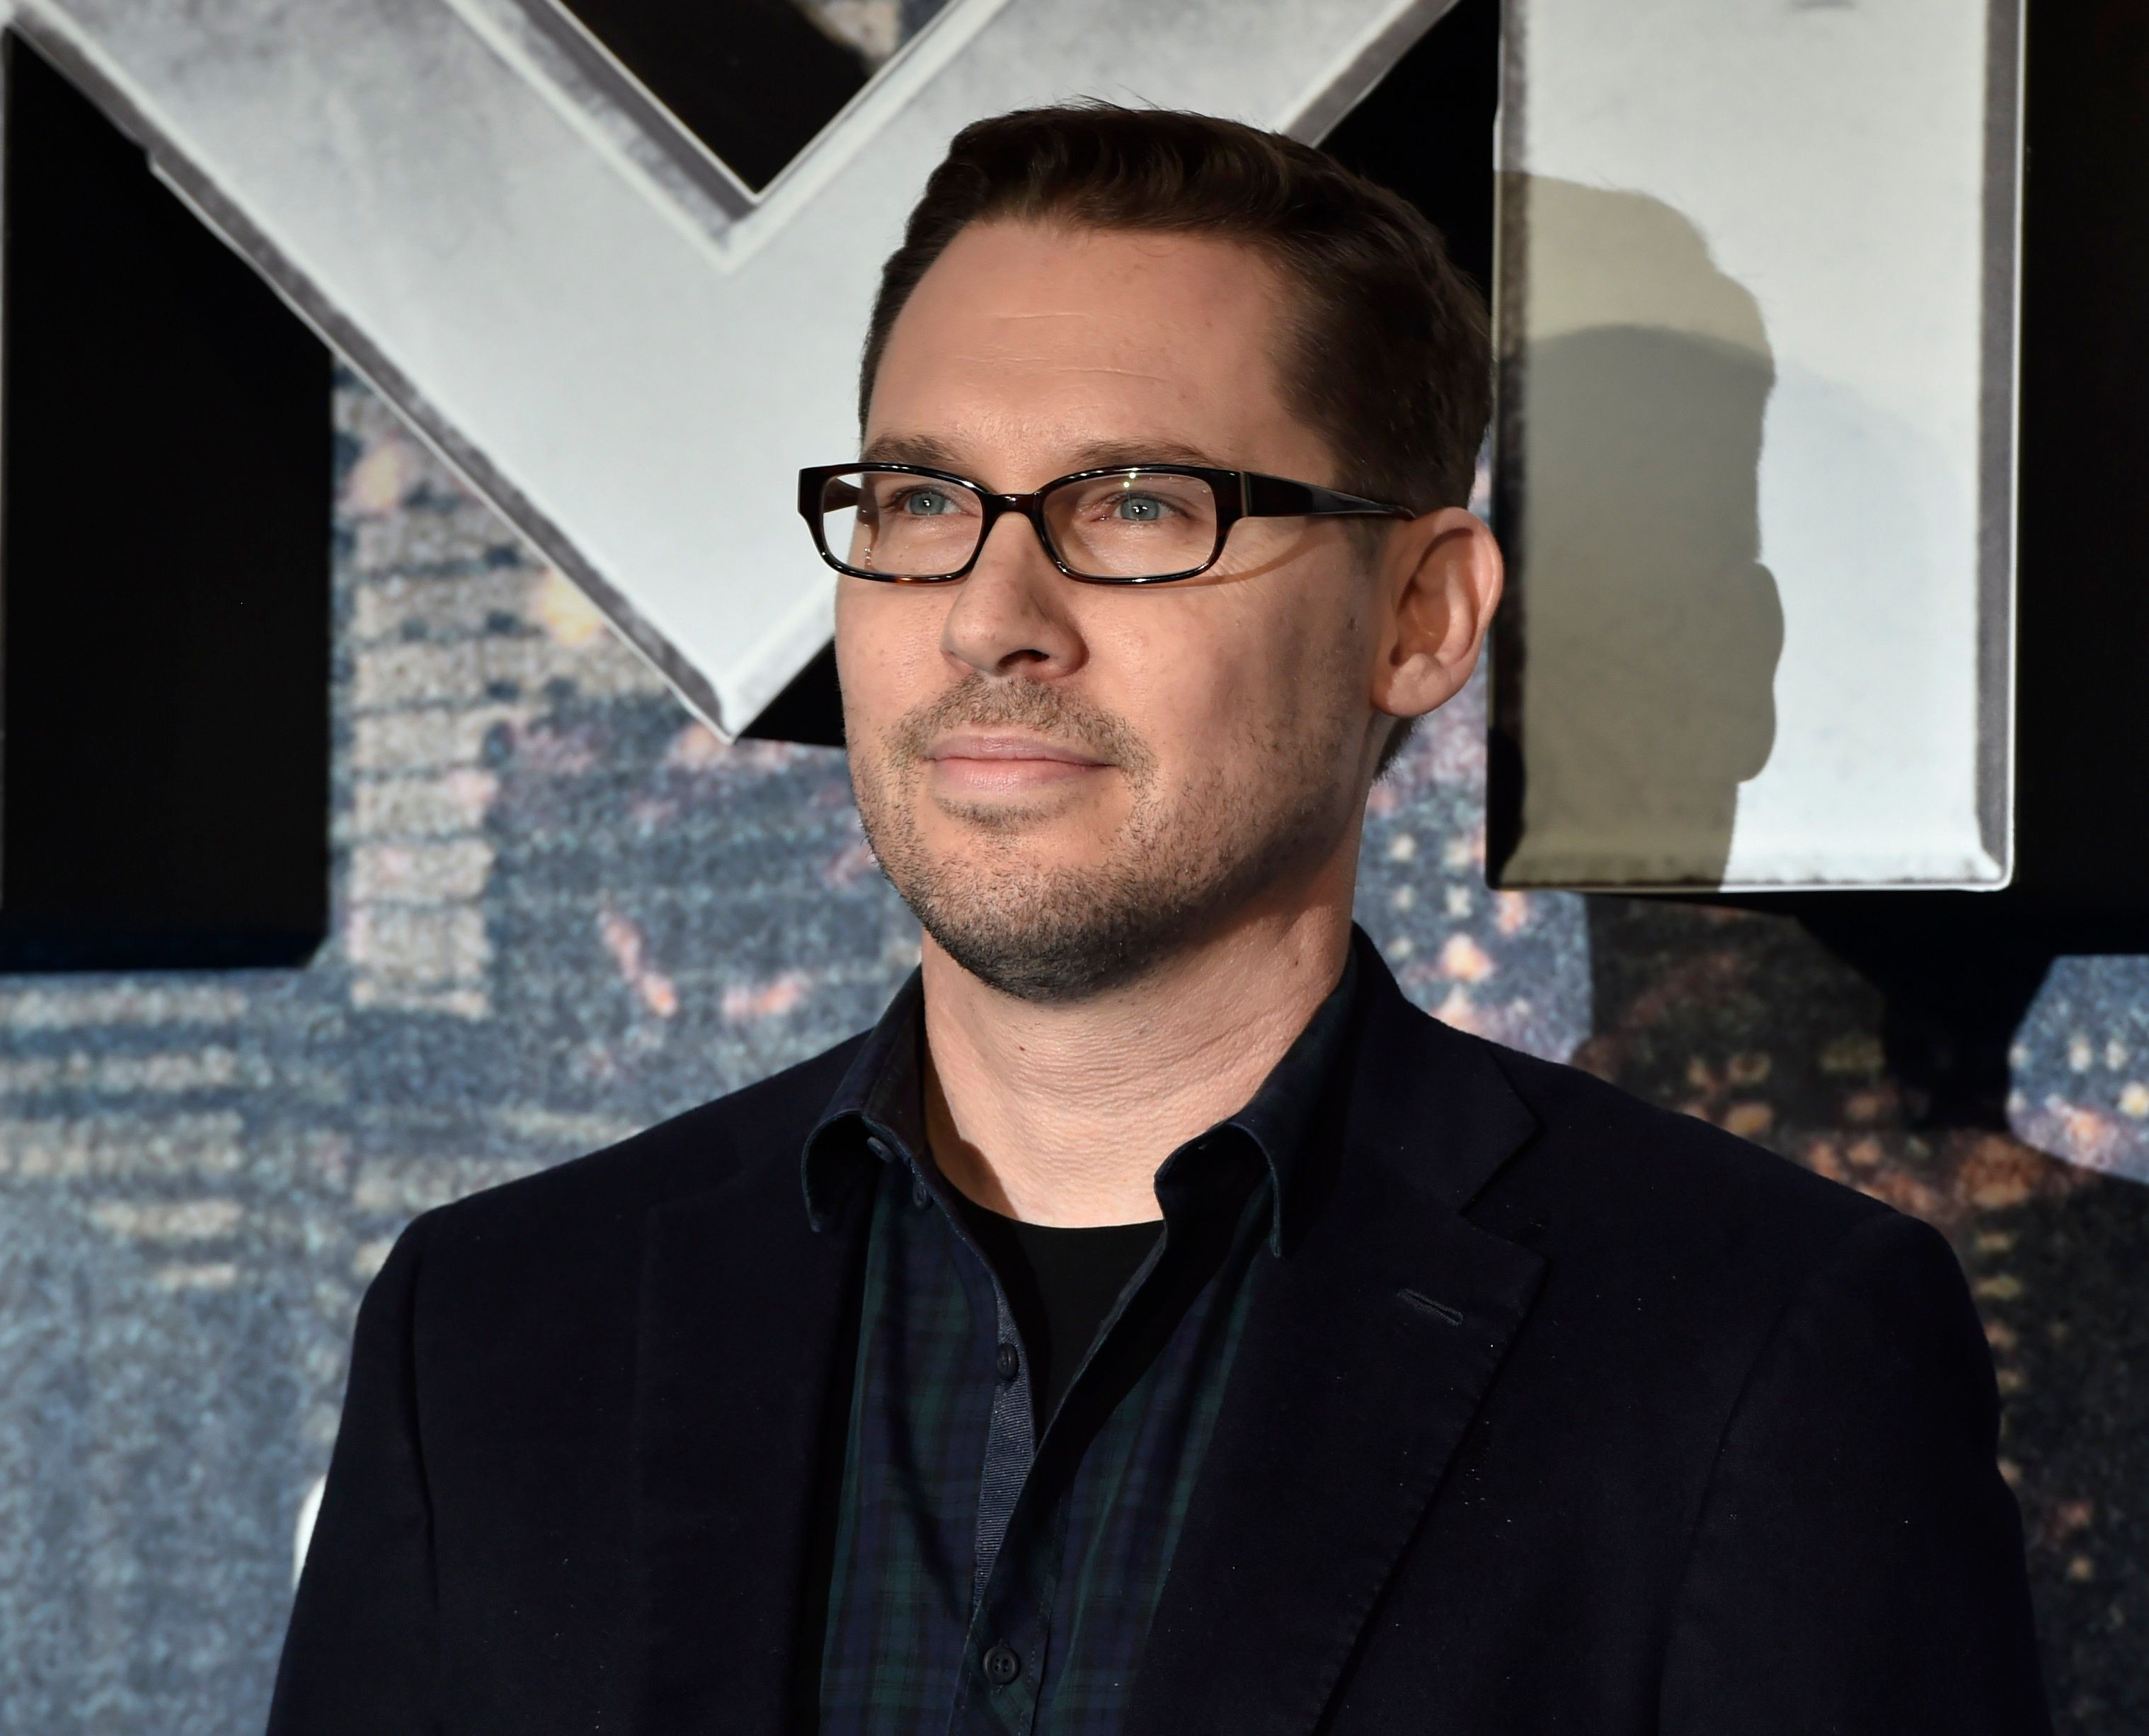 Director Bryan Singer faces new sexual misconduct allegations.